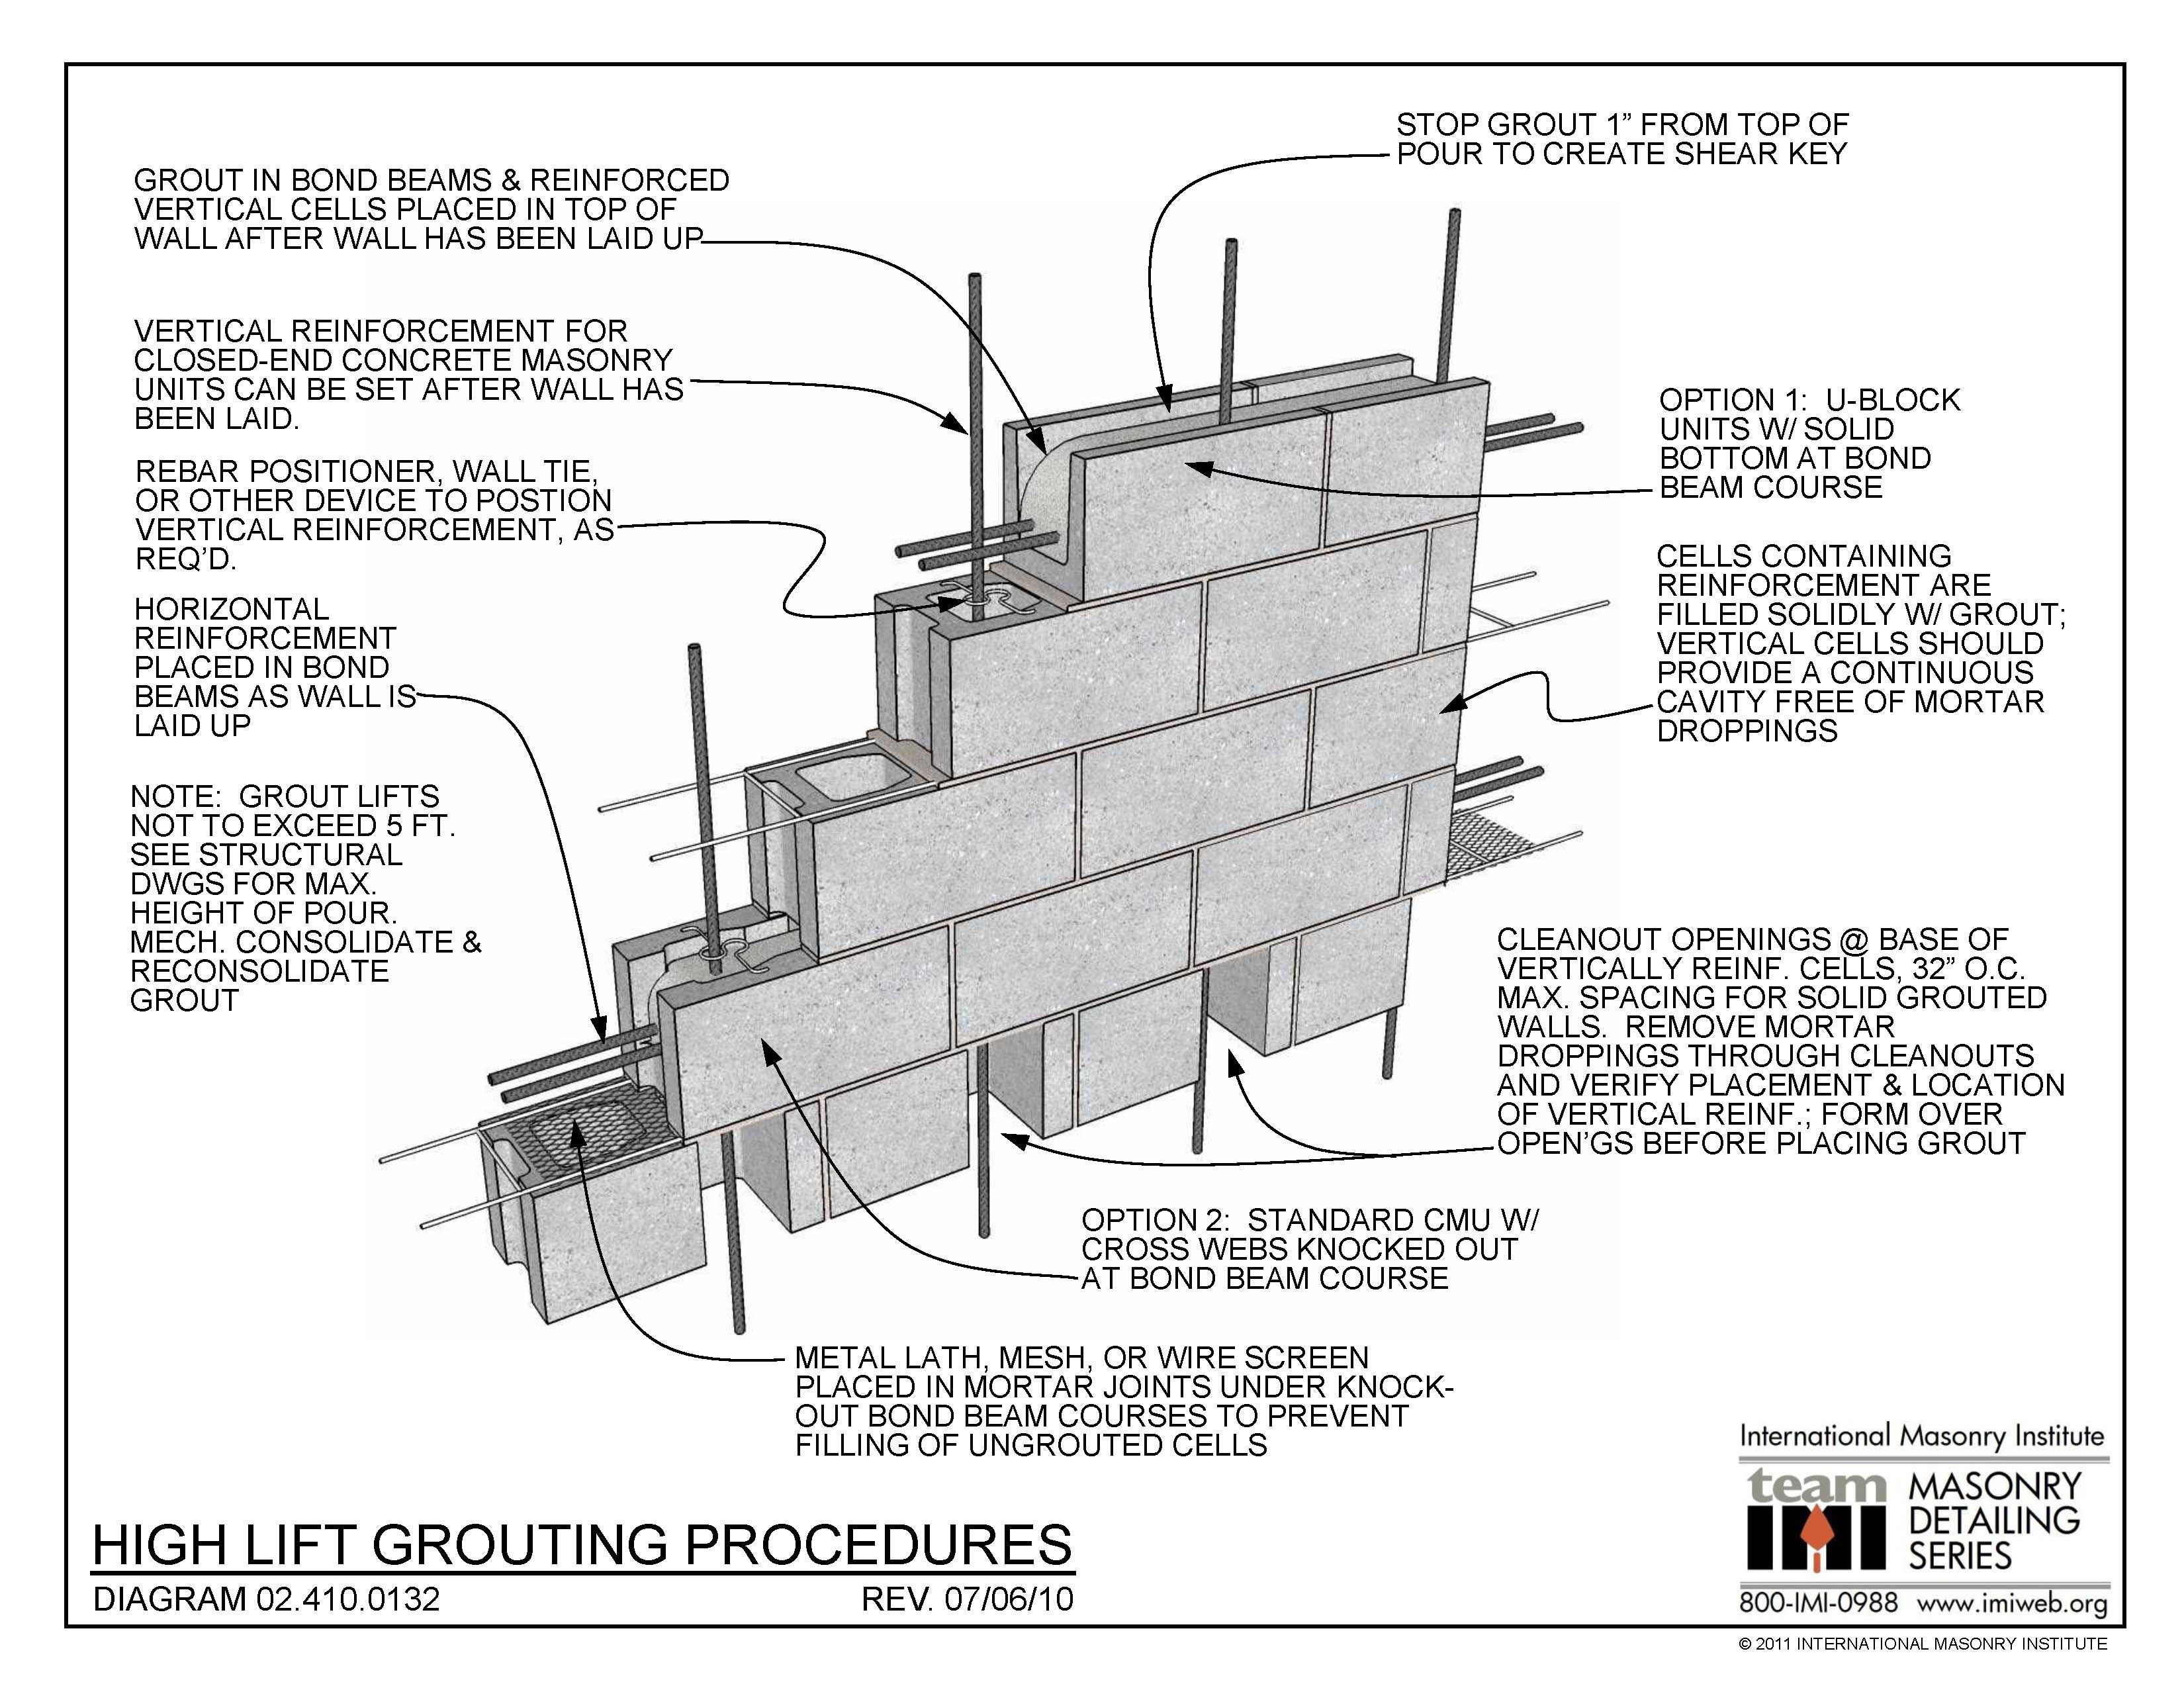 02 410 0132 high lift grouting procedures international masonry institute construction drawings masonry [ 3300 x 2550 Pixel ]